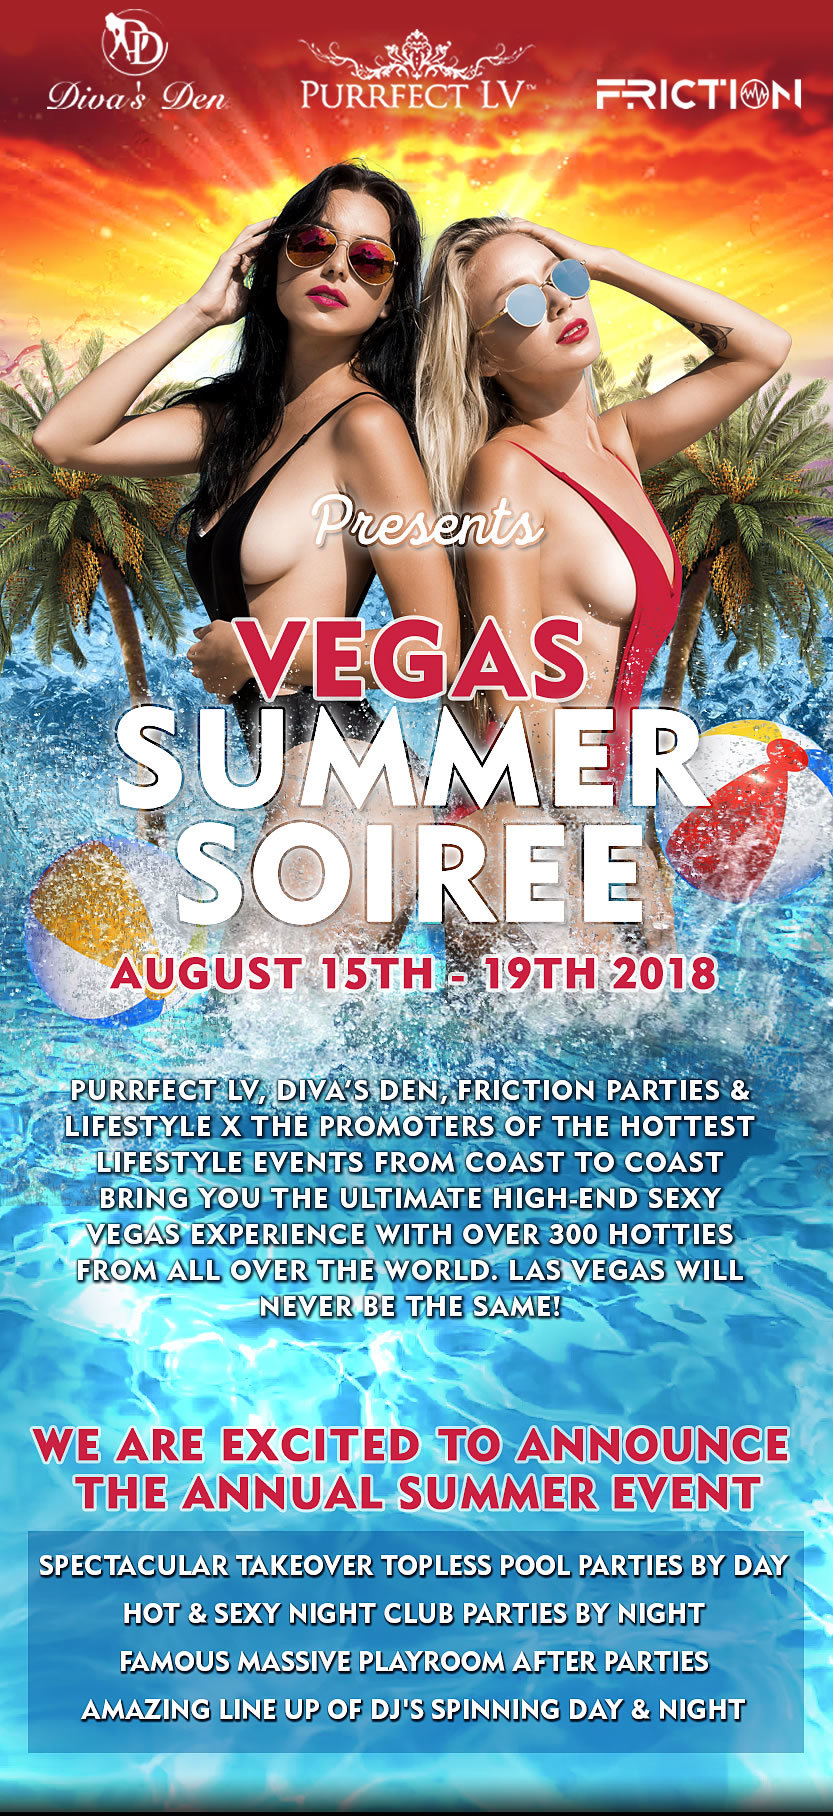 Vegas Summer Soiree - August 15th - 19th, 2018 - Swinger Party